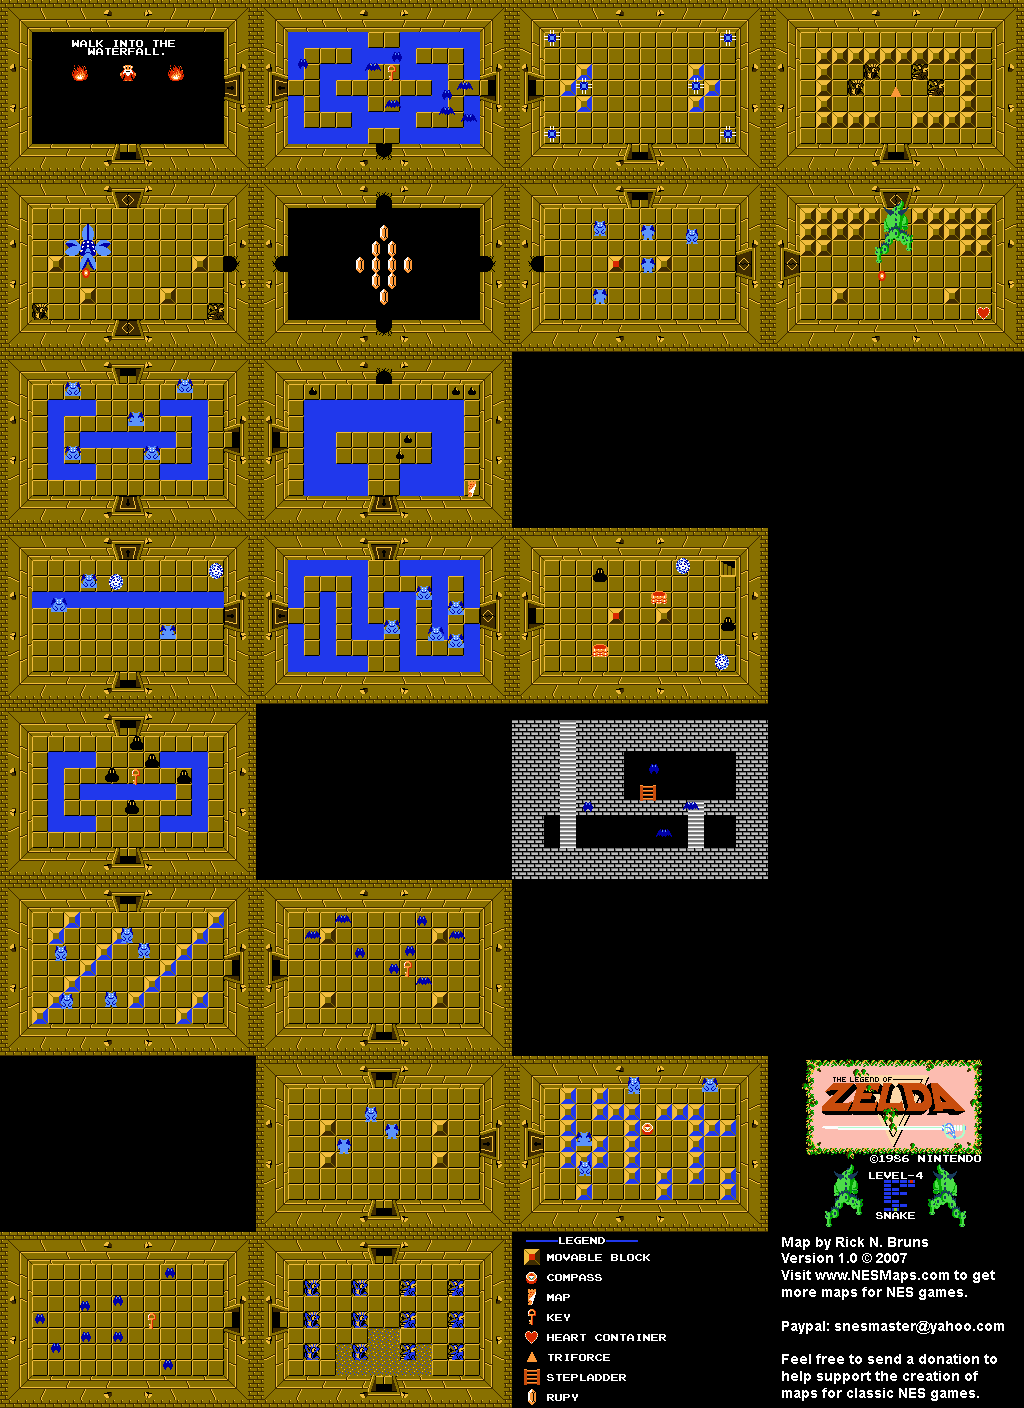 Legend Of Zelda Secret Map : legend, zelda, secret, Legend, Zelda, Galaxy.com